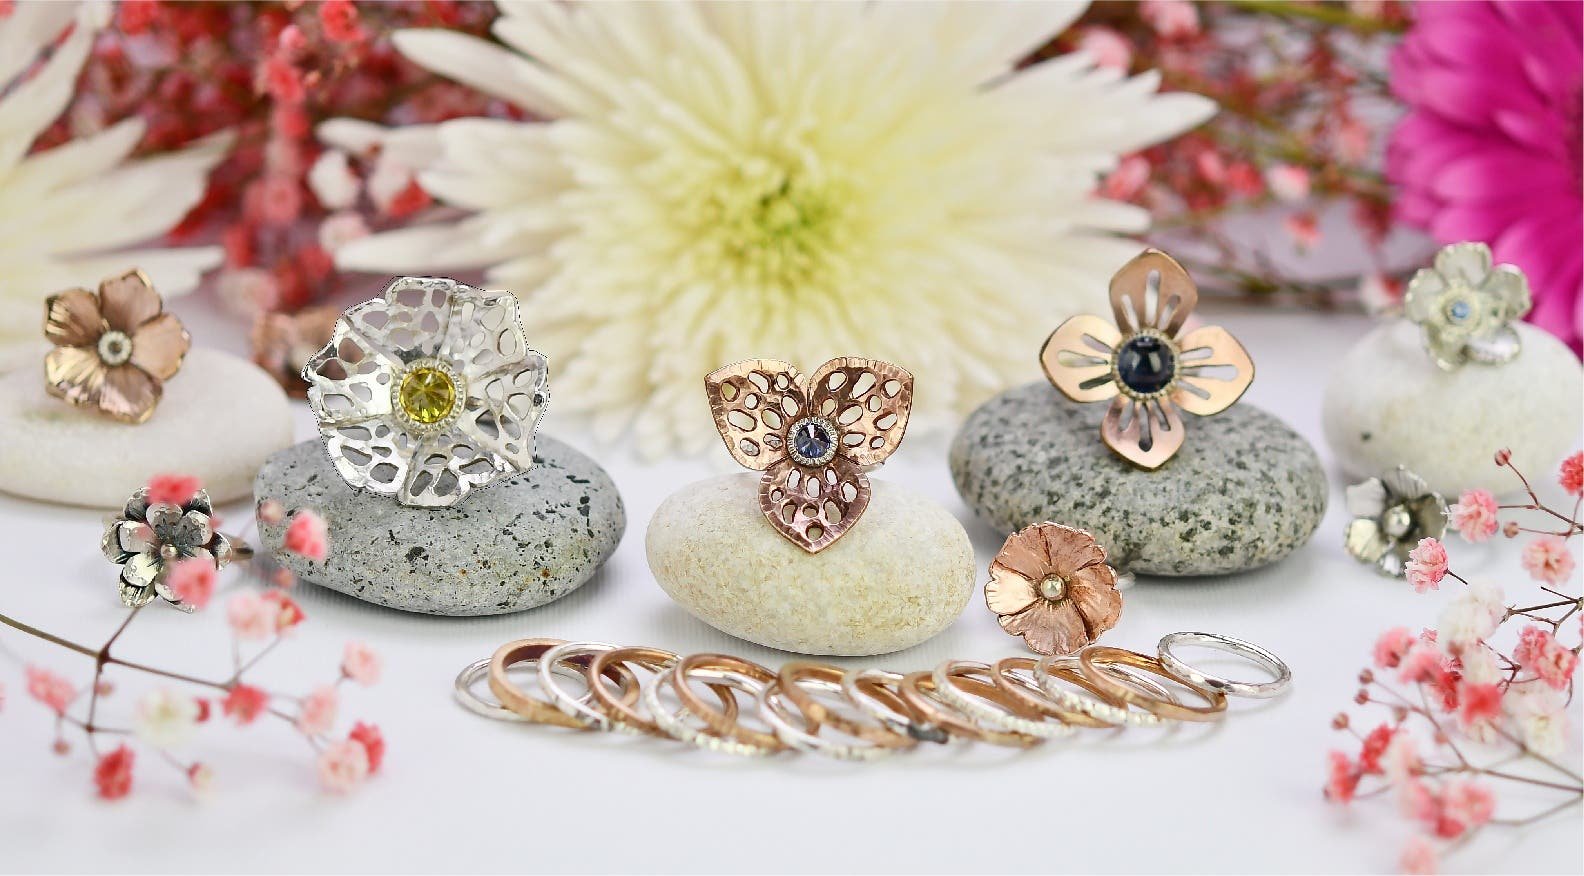 3. Delicate Flower Ring